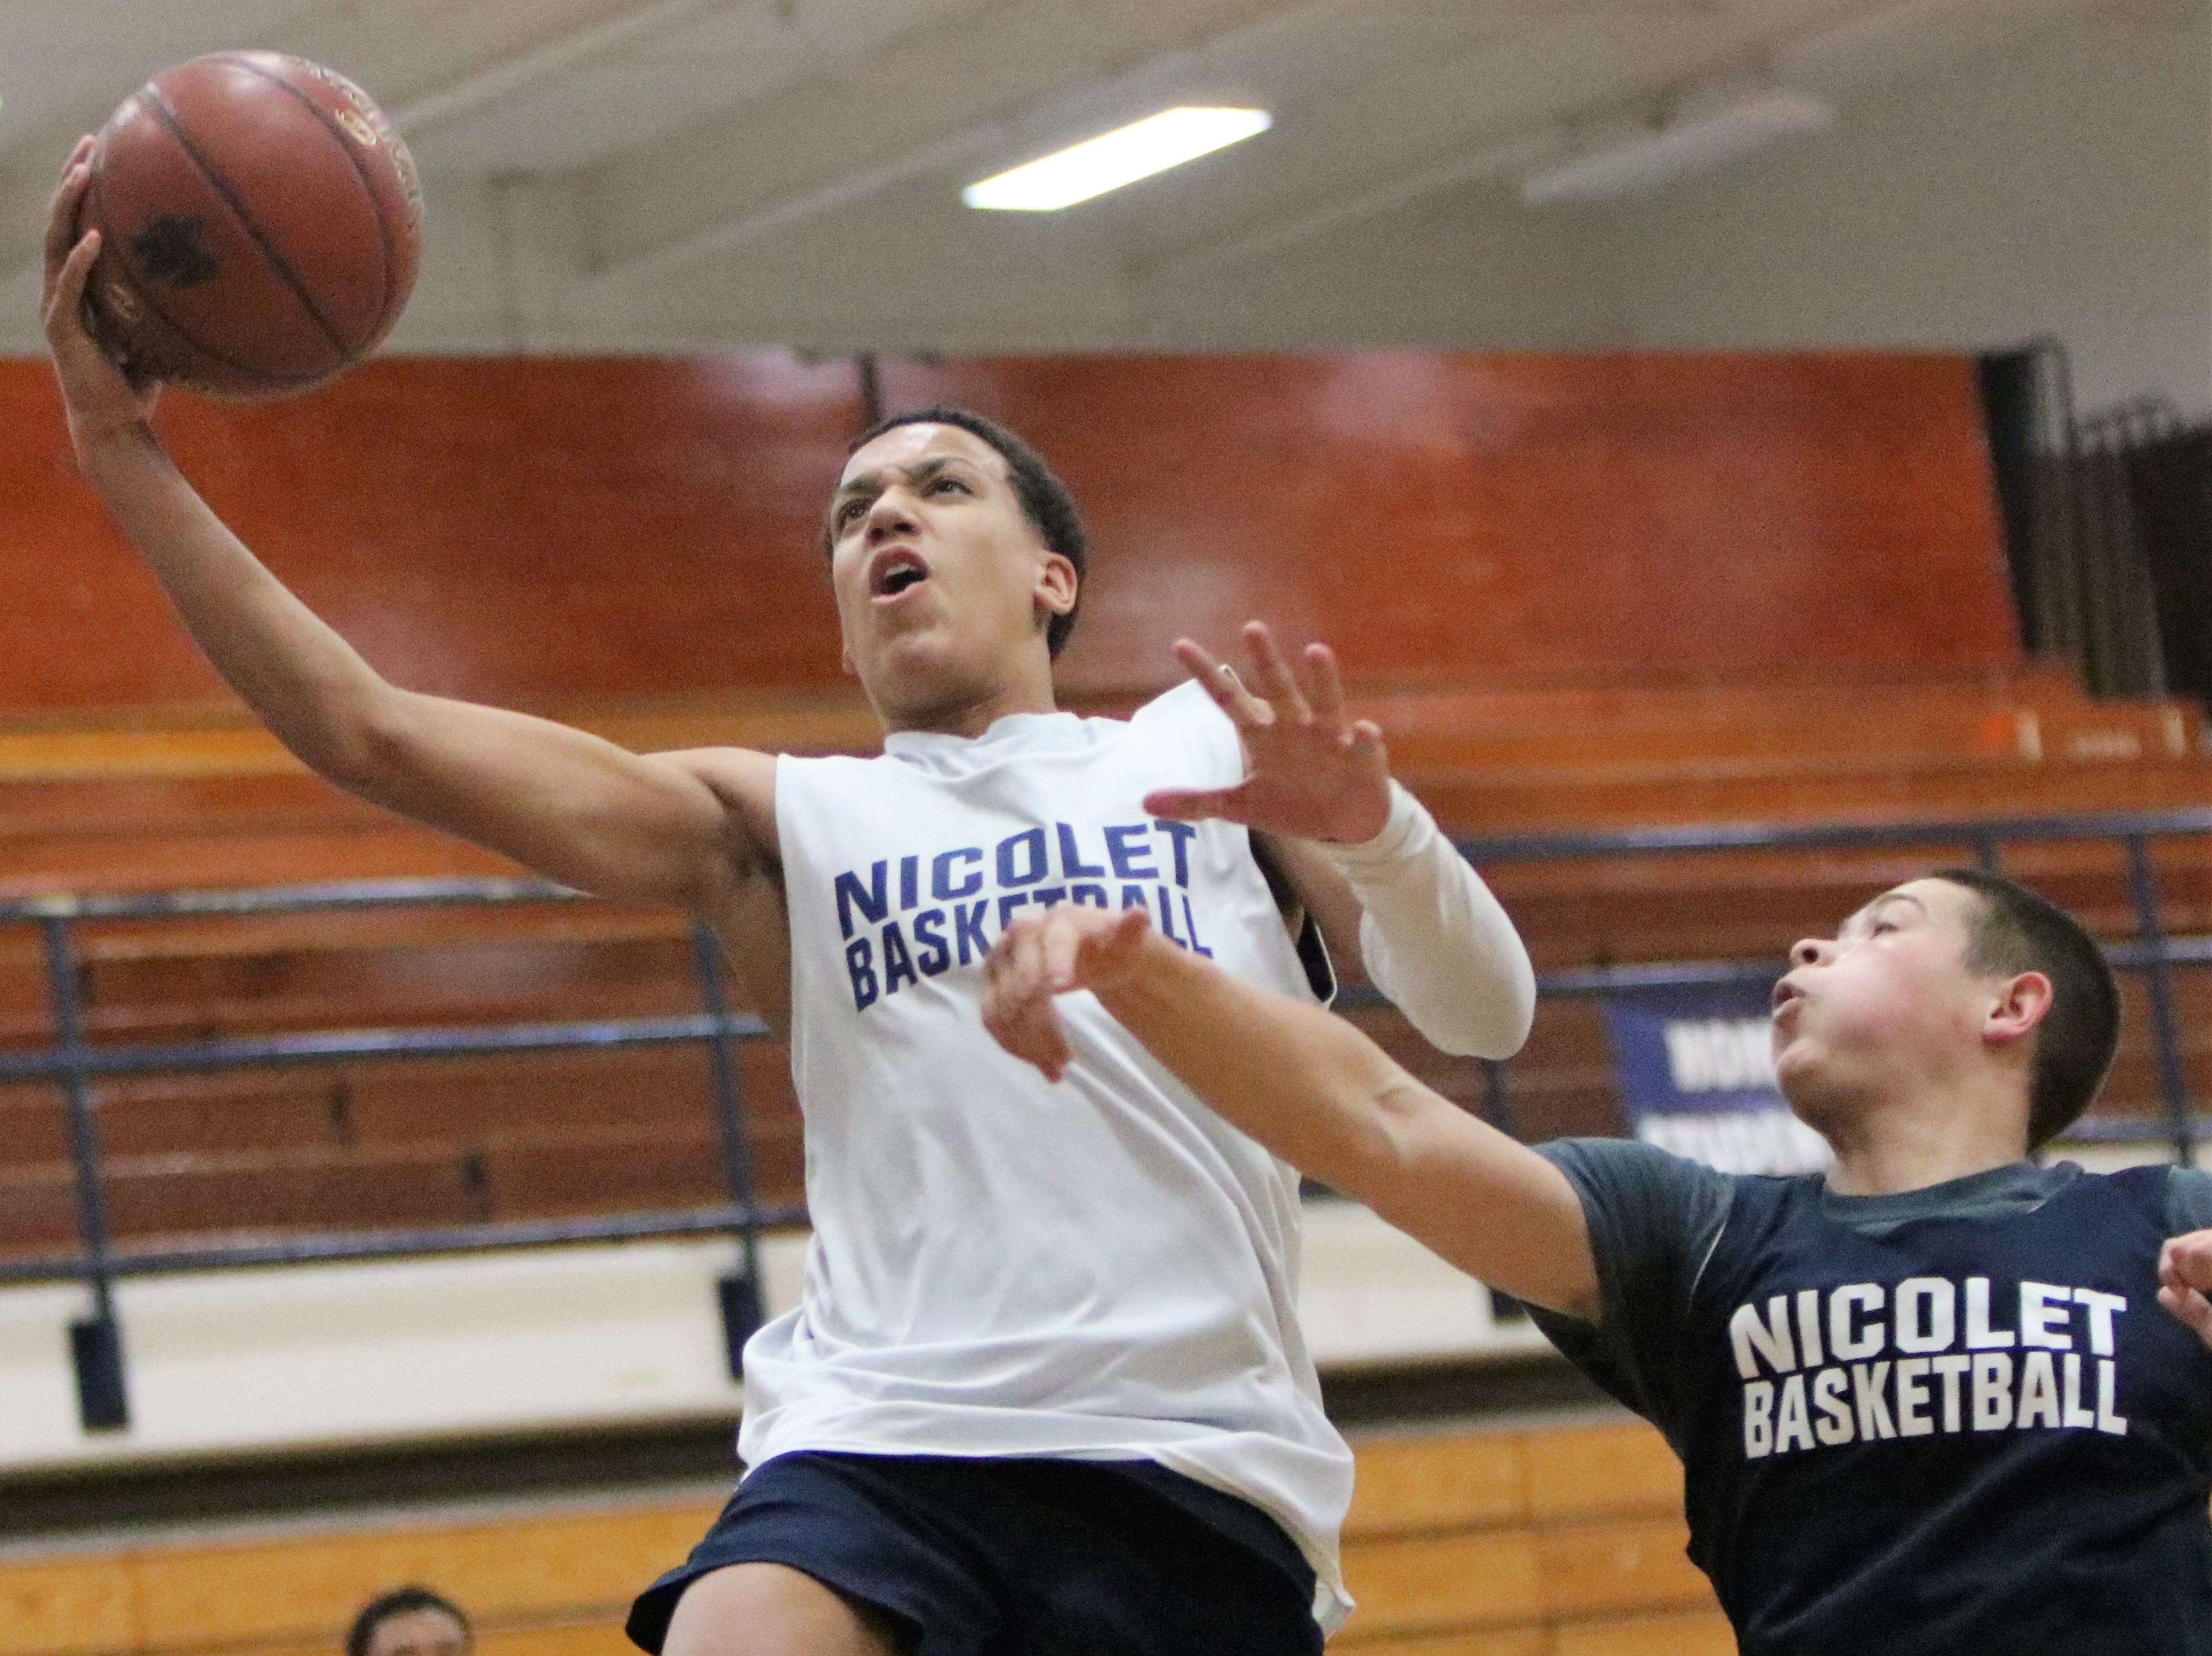 Nicolet's Kobe Johnson rises up for a layup over Sonny Phinisee during practice on Nov. 19. Johnson, along with his older brother, Jalen, transferred from Sun Prairie at the beginning of the school year.